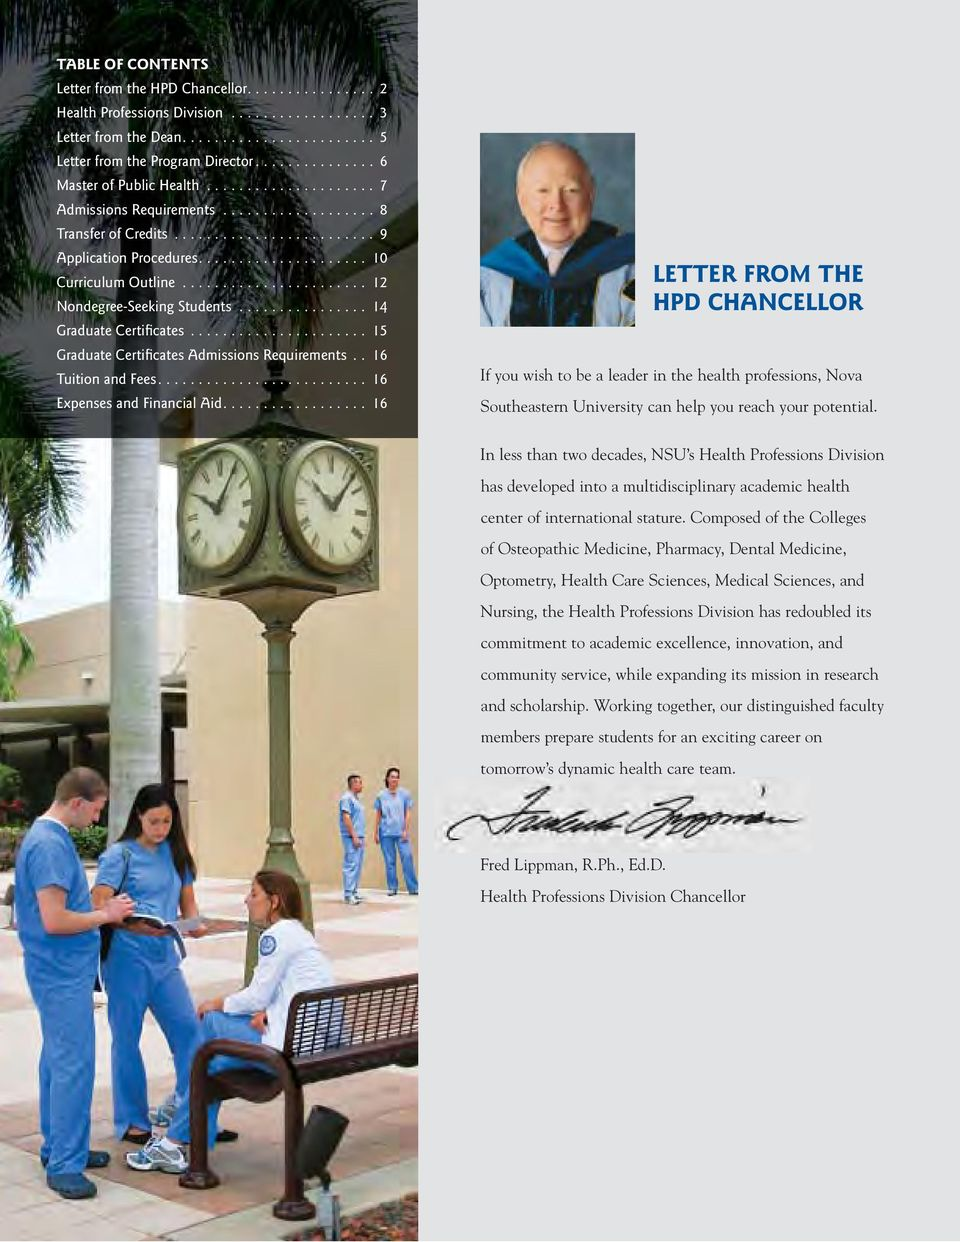 ... LETTER FROM THE HPD CHANCELLOR If you wish to be a leader in the health professions, Nova Southeastern University can help you reach your potential.